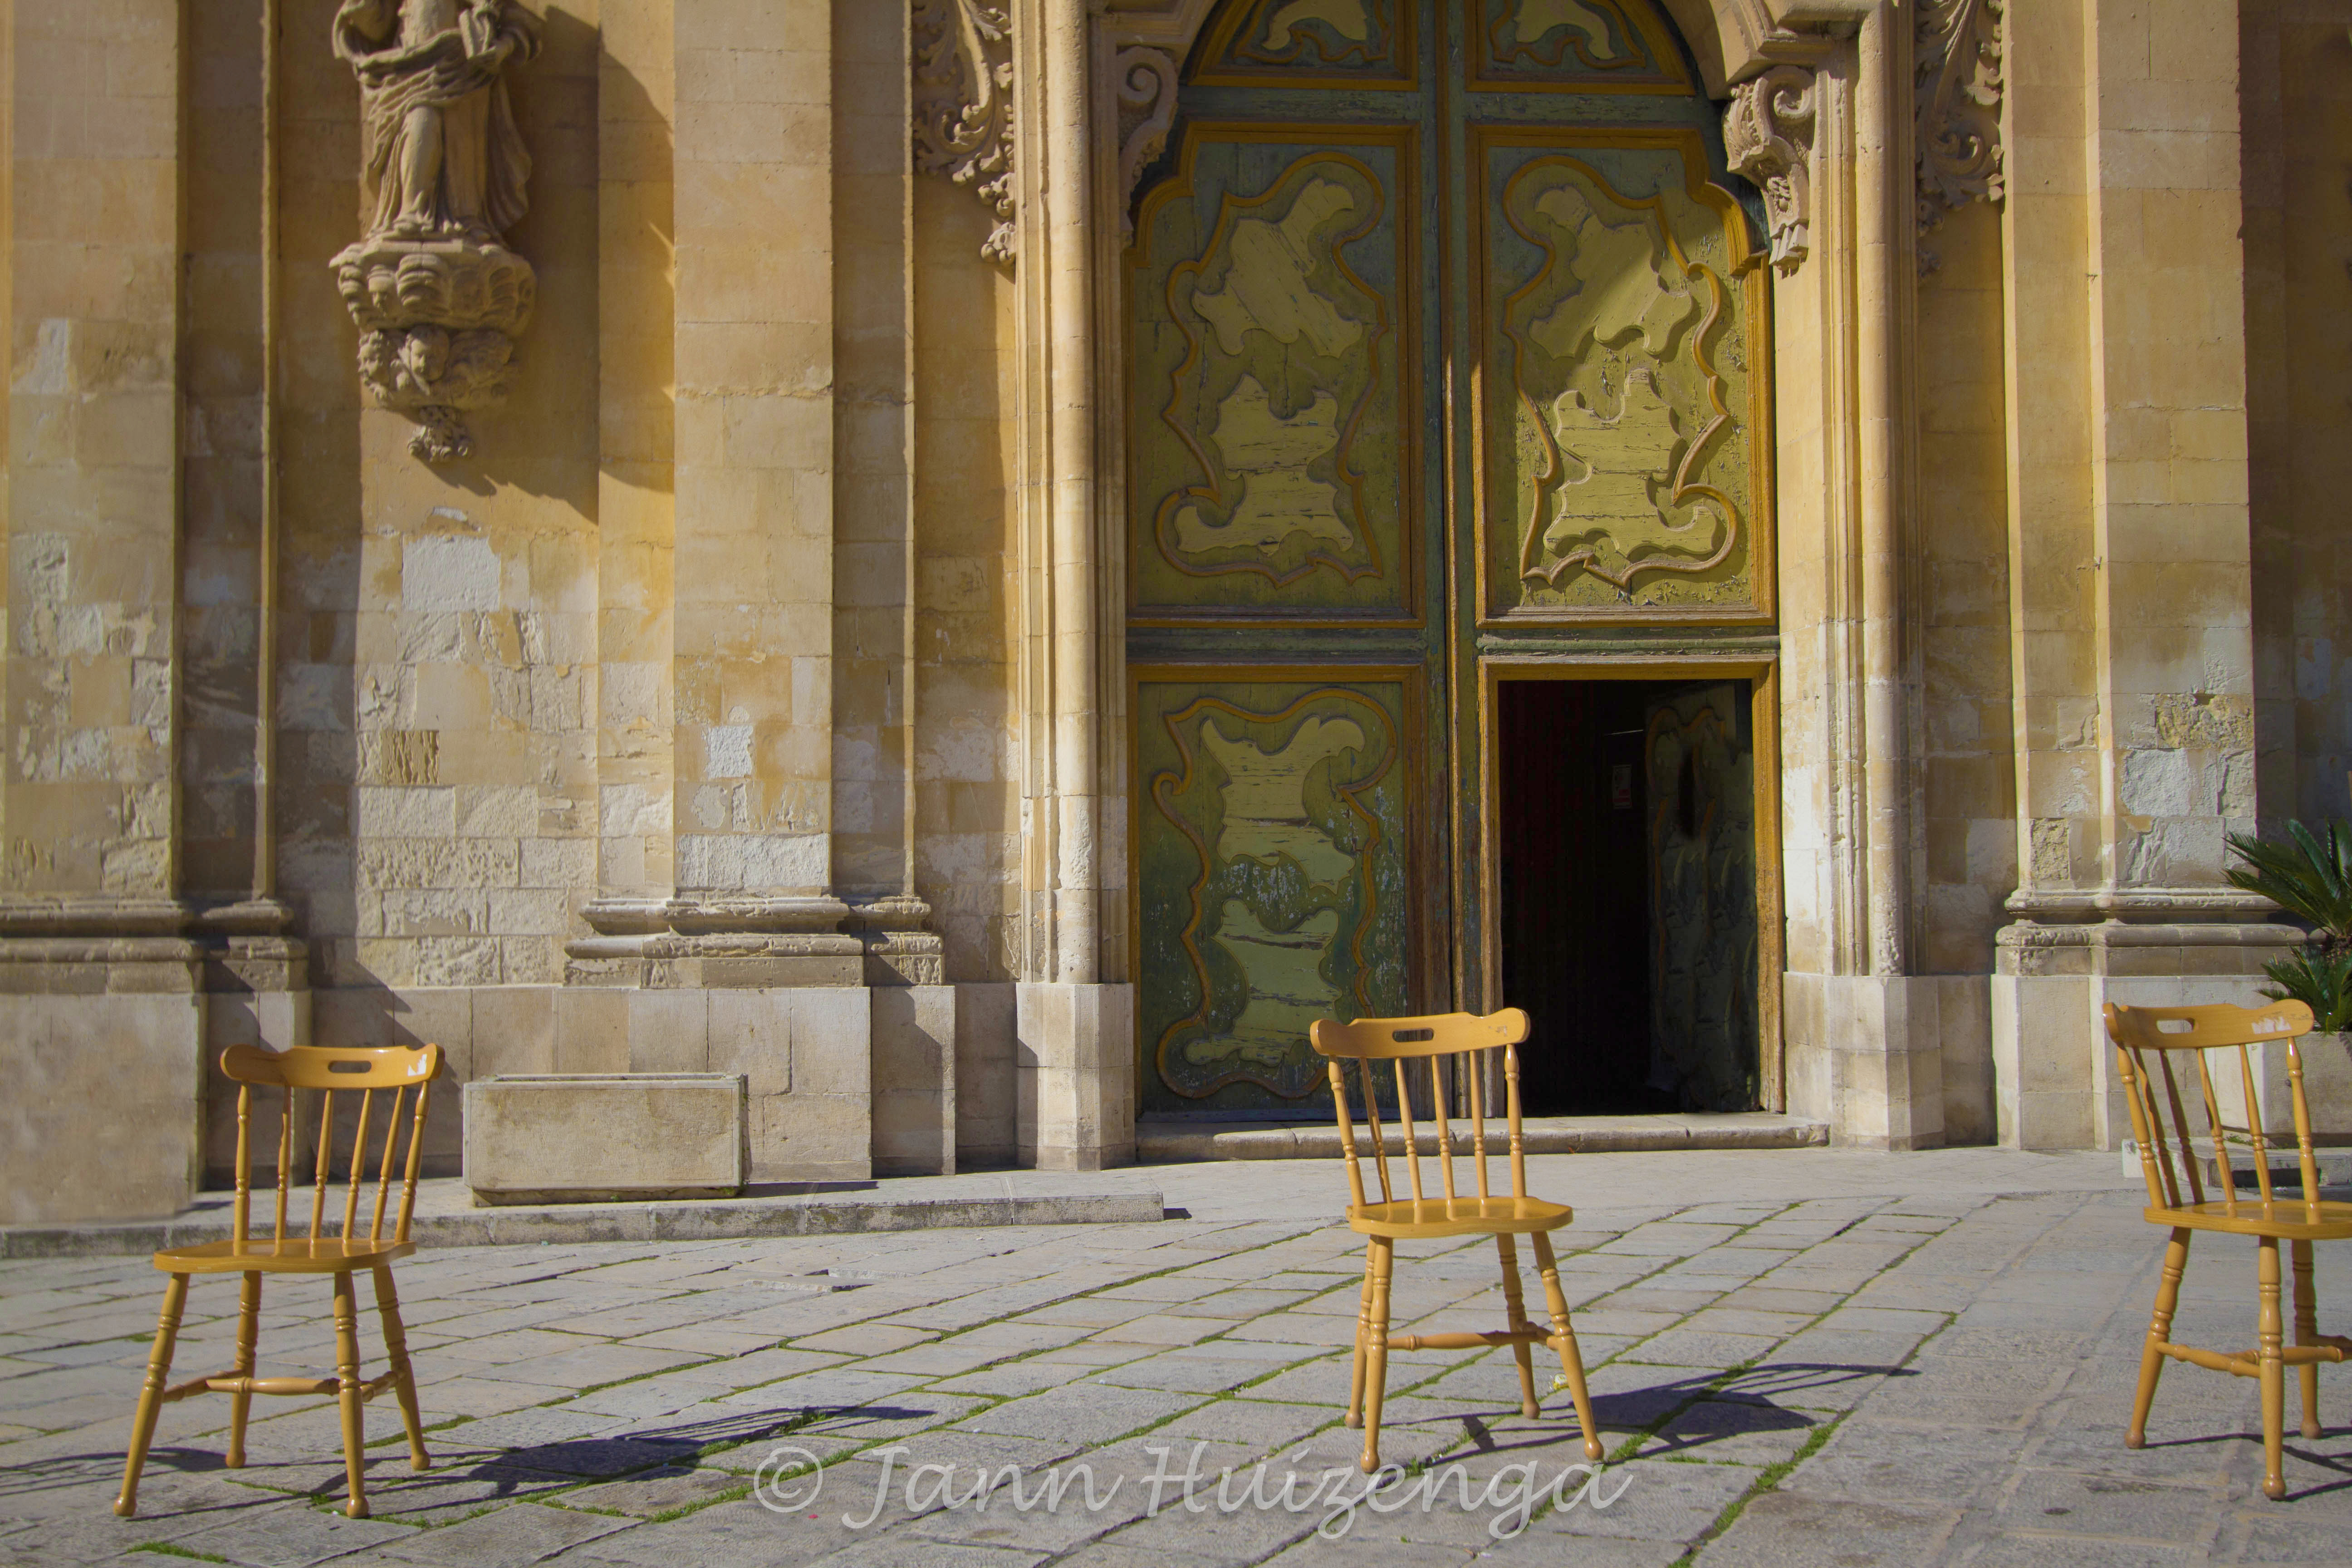 Empty Chairs In Southeast Sicily, Copyright Jann Huizenga